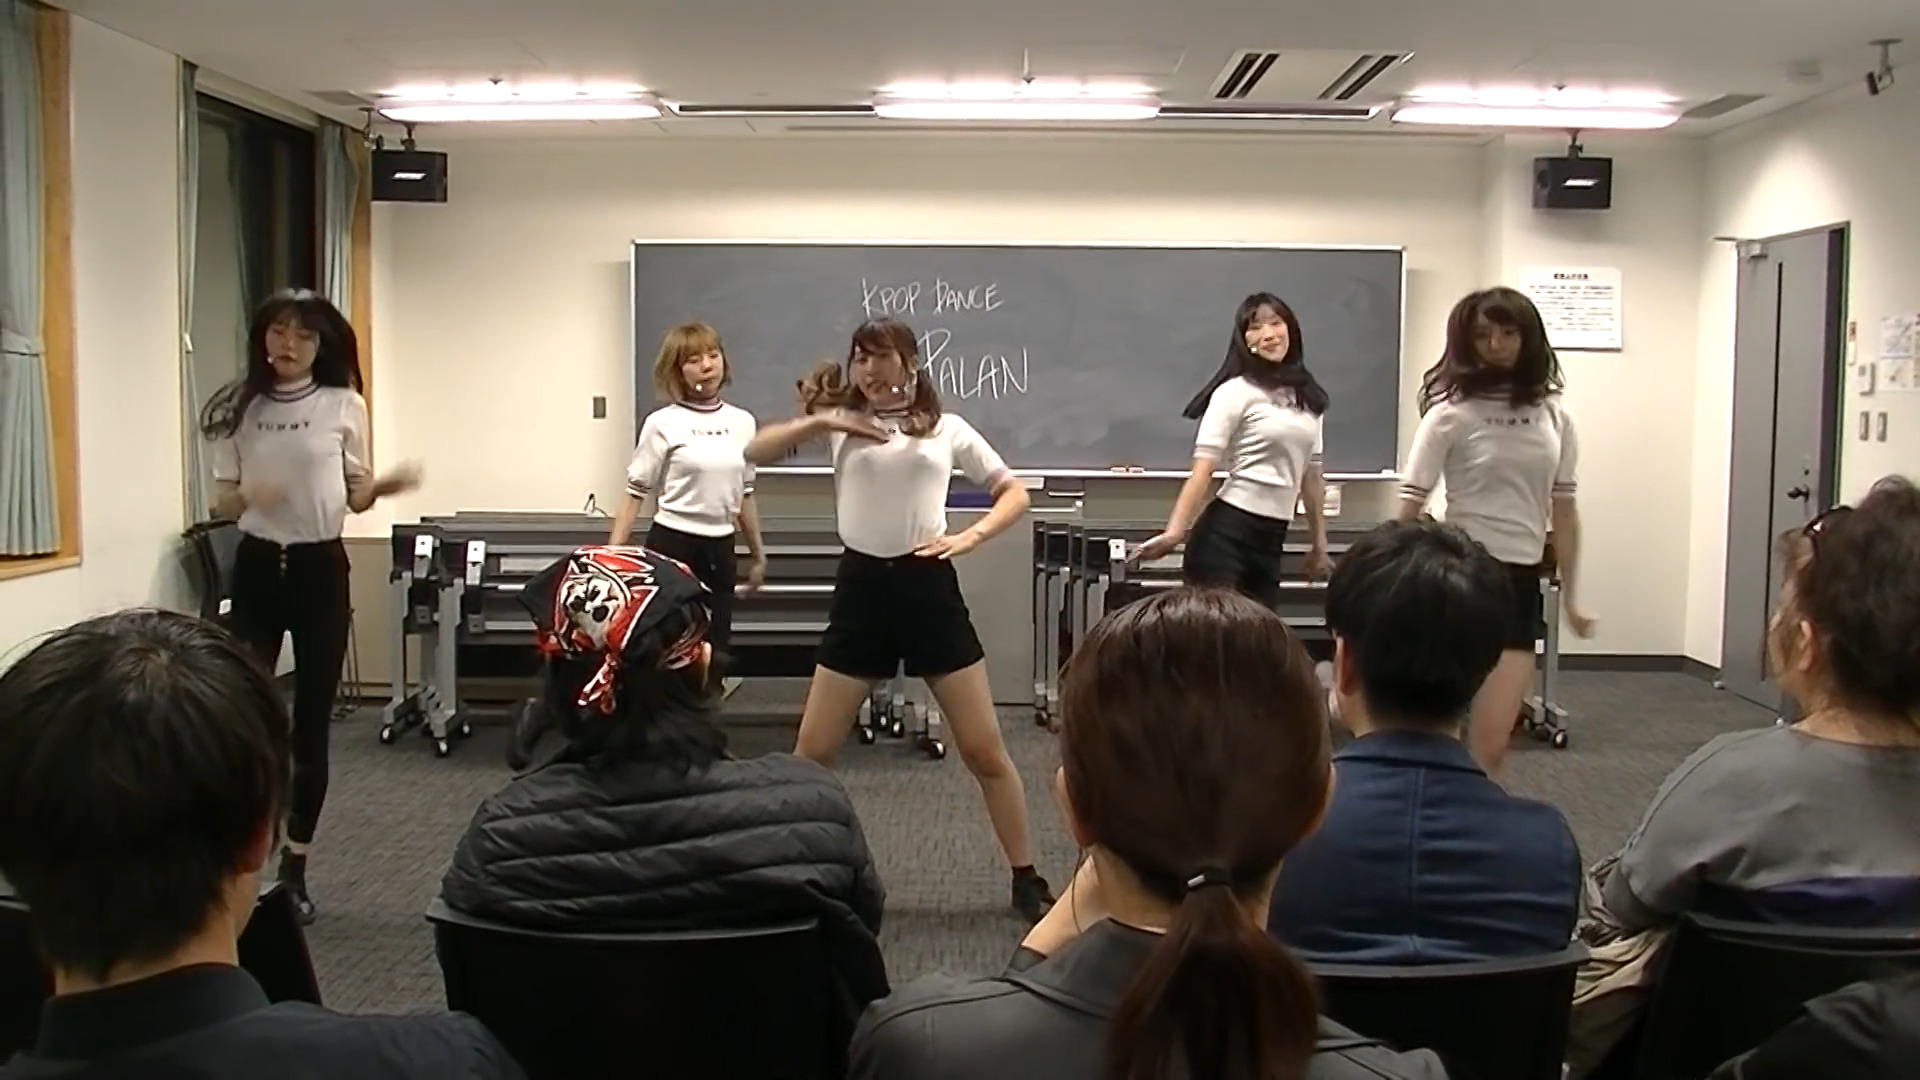 Produce101 FingerTips cover dance by PALAN 00:47